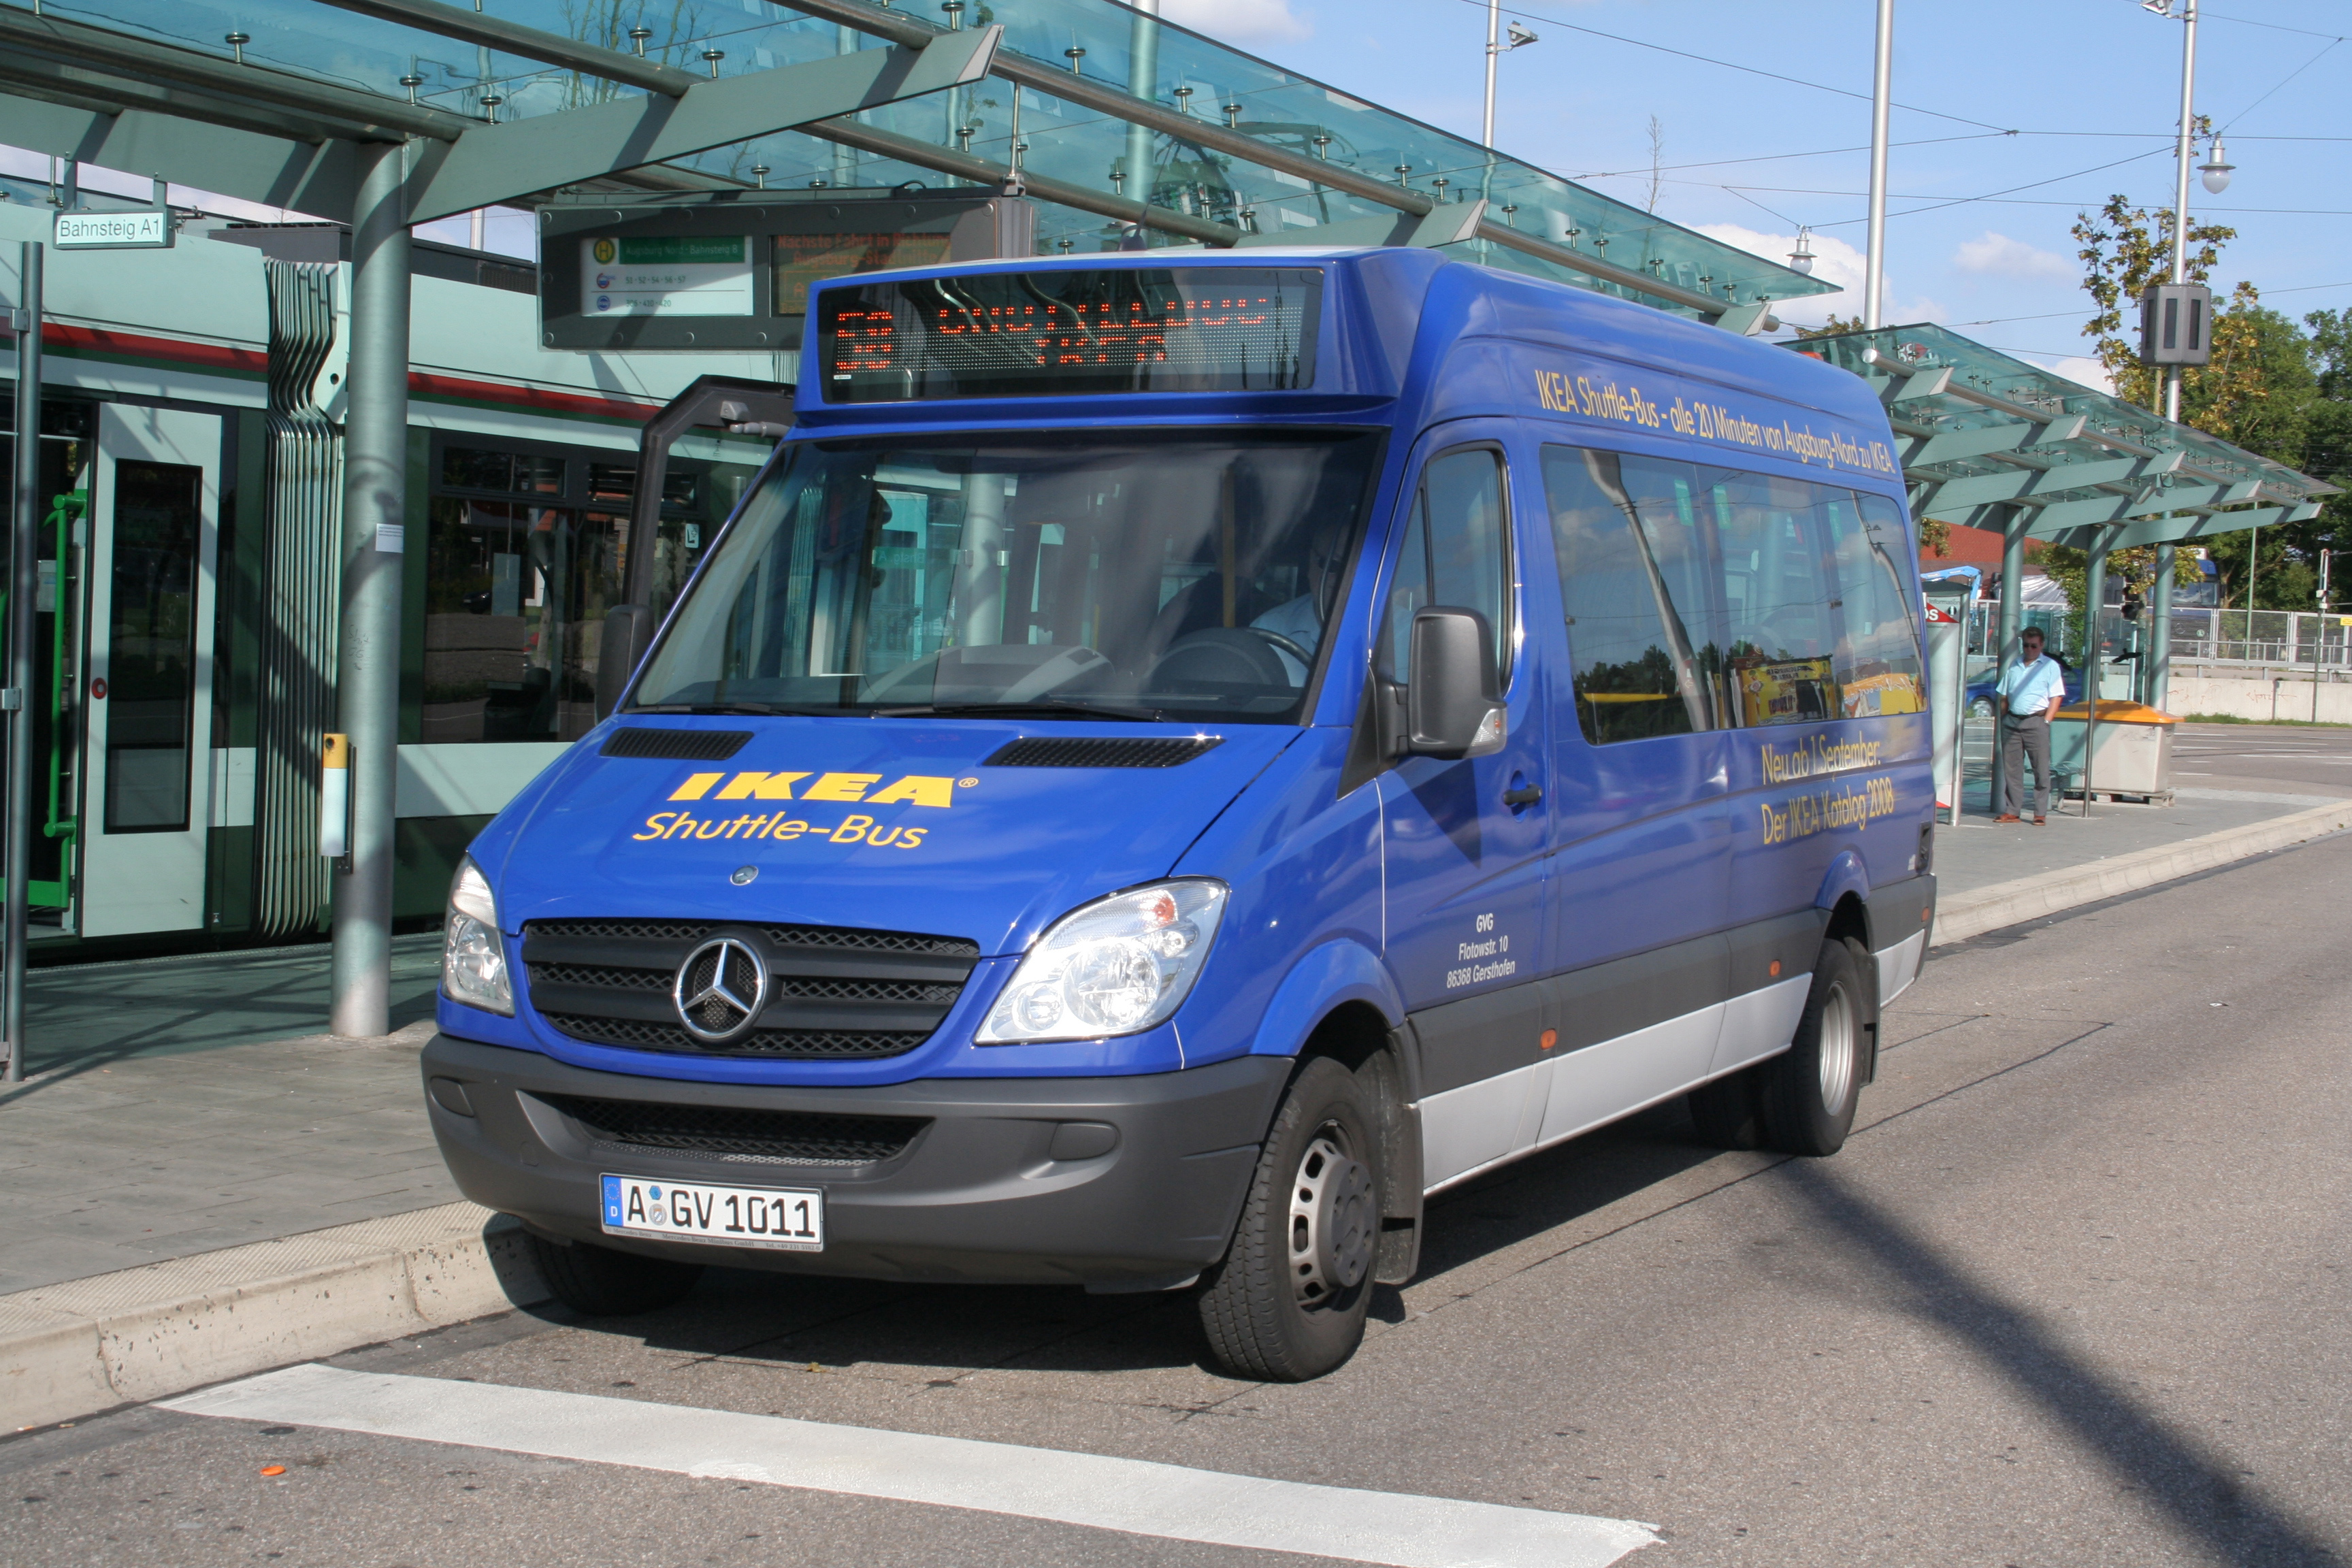 Awesome Life Hack of the Week: Free shuttles for shopping